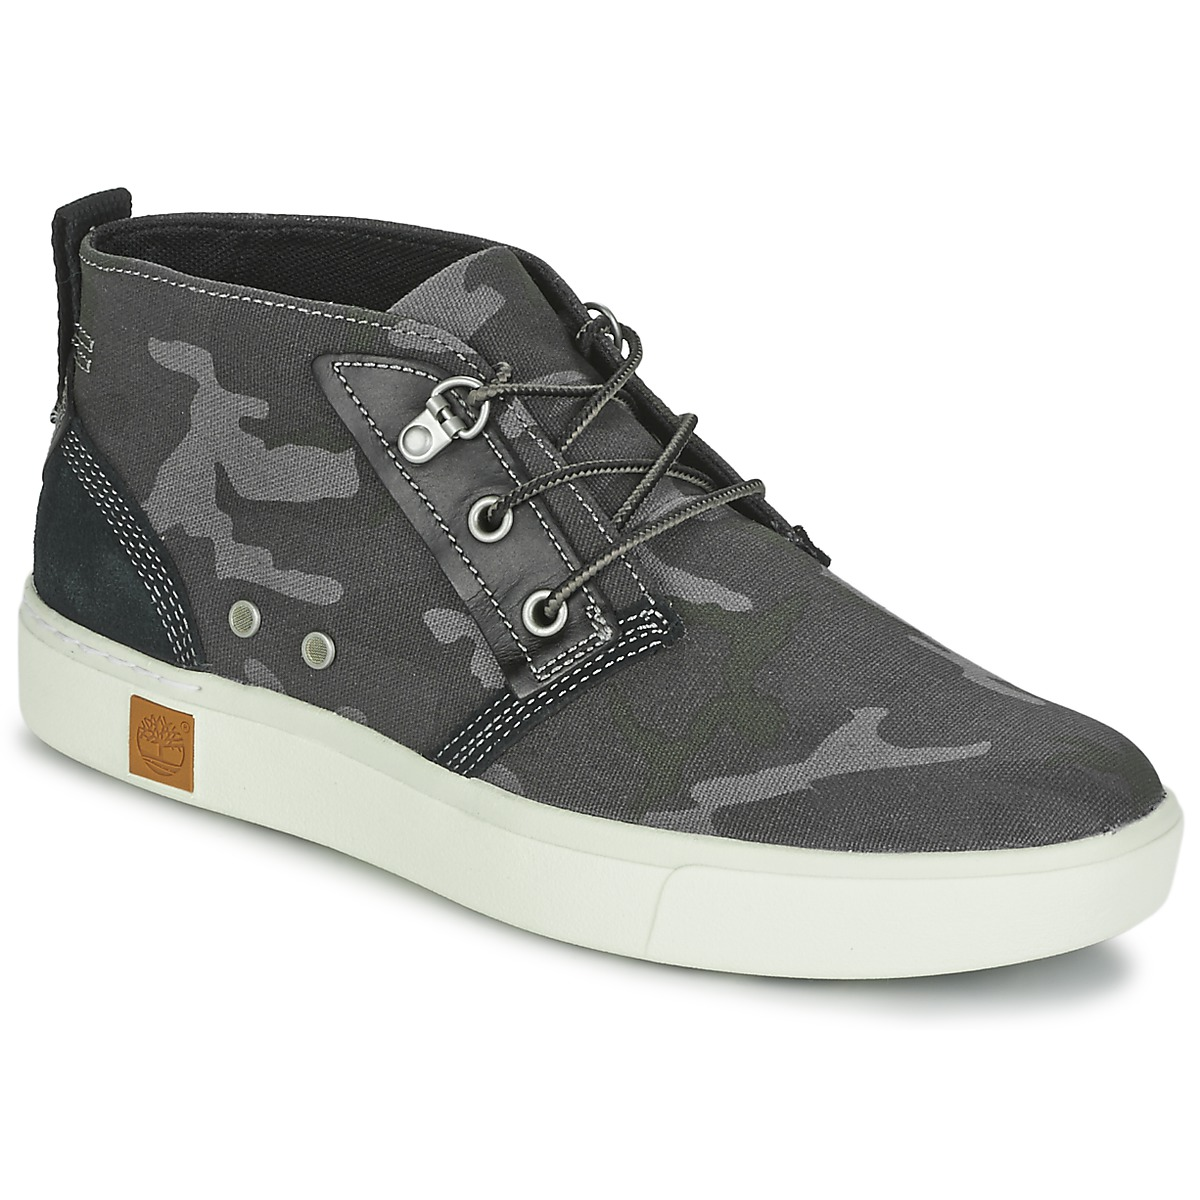 Basket montante Timberland AMHERST CHUKKA Gris / Camouflage noir